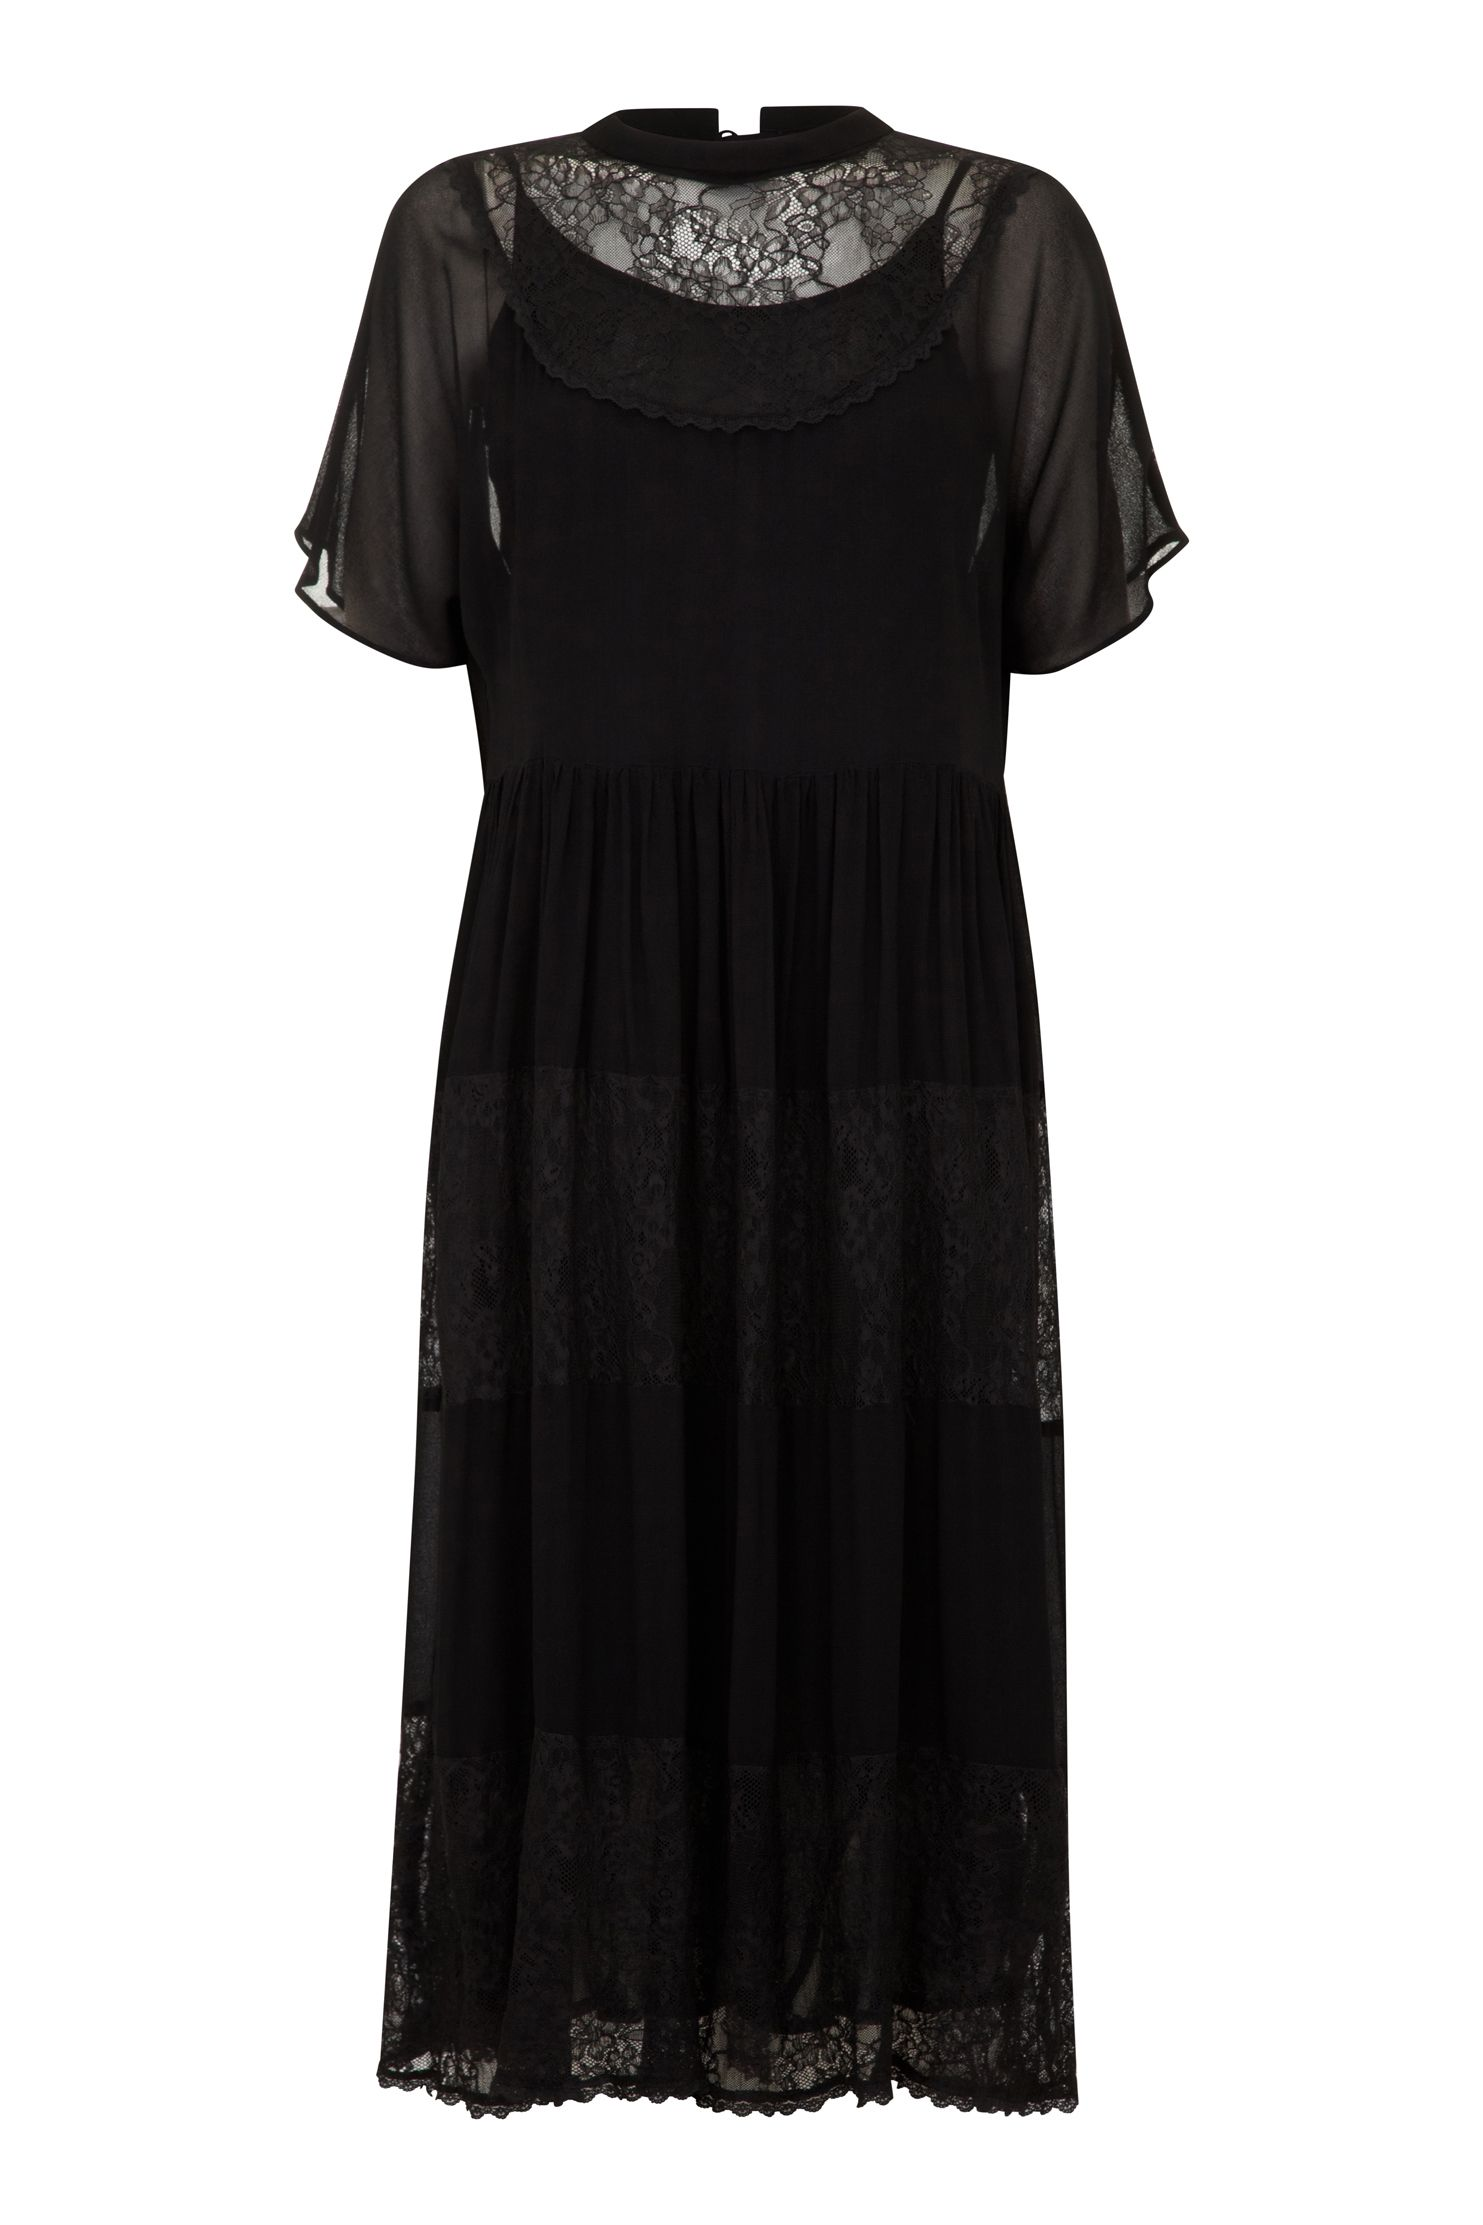 1940s Evening, Prom, Party, Cocktail Dresses & Ball Gowns Ghost Laura Dress Black £58.50 AT vintagedancer.com